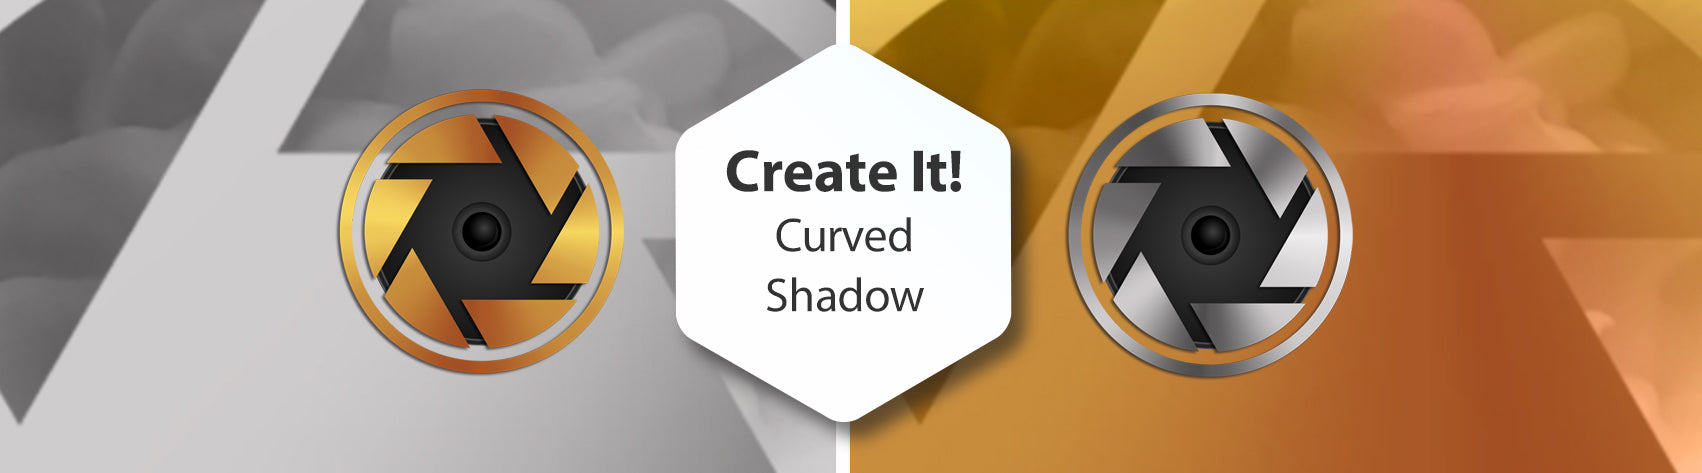 Create It! Creating a Curved Shadow